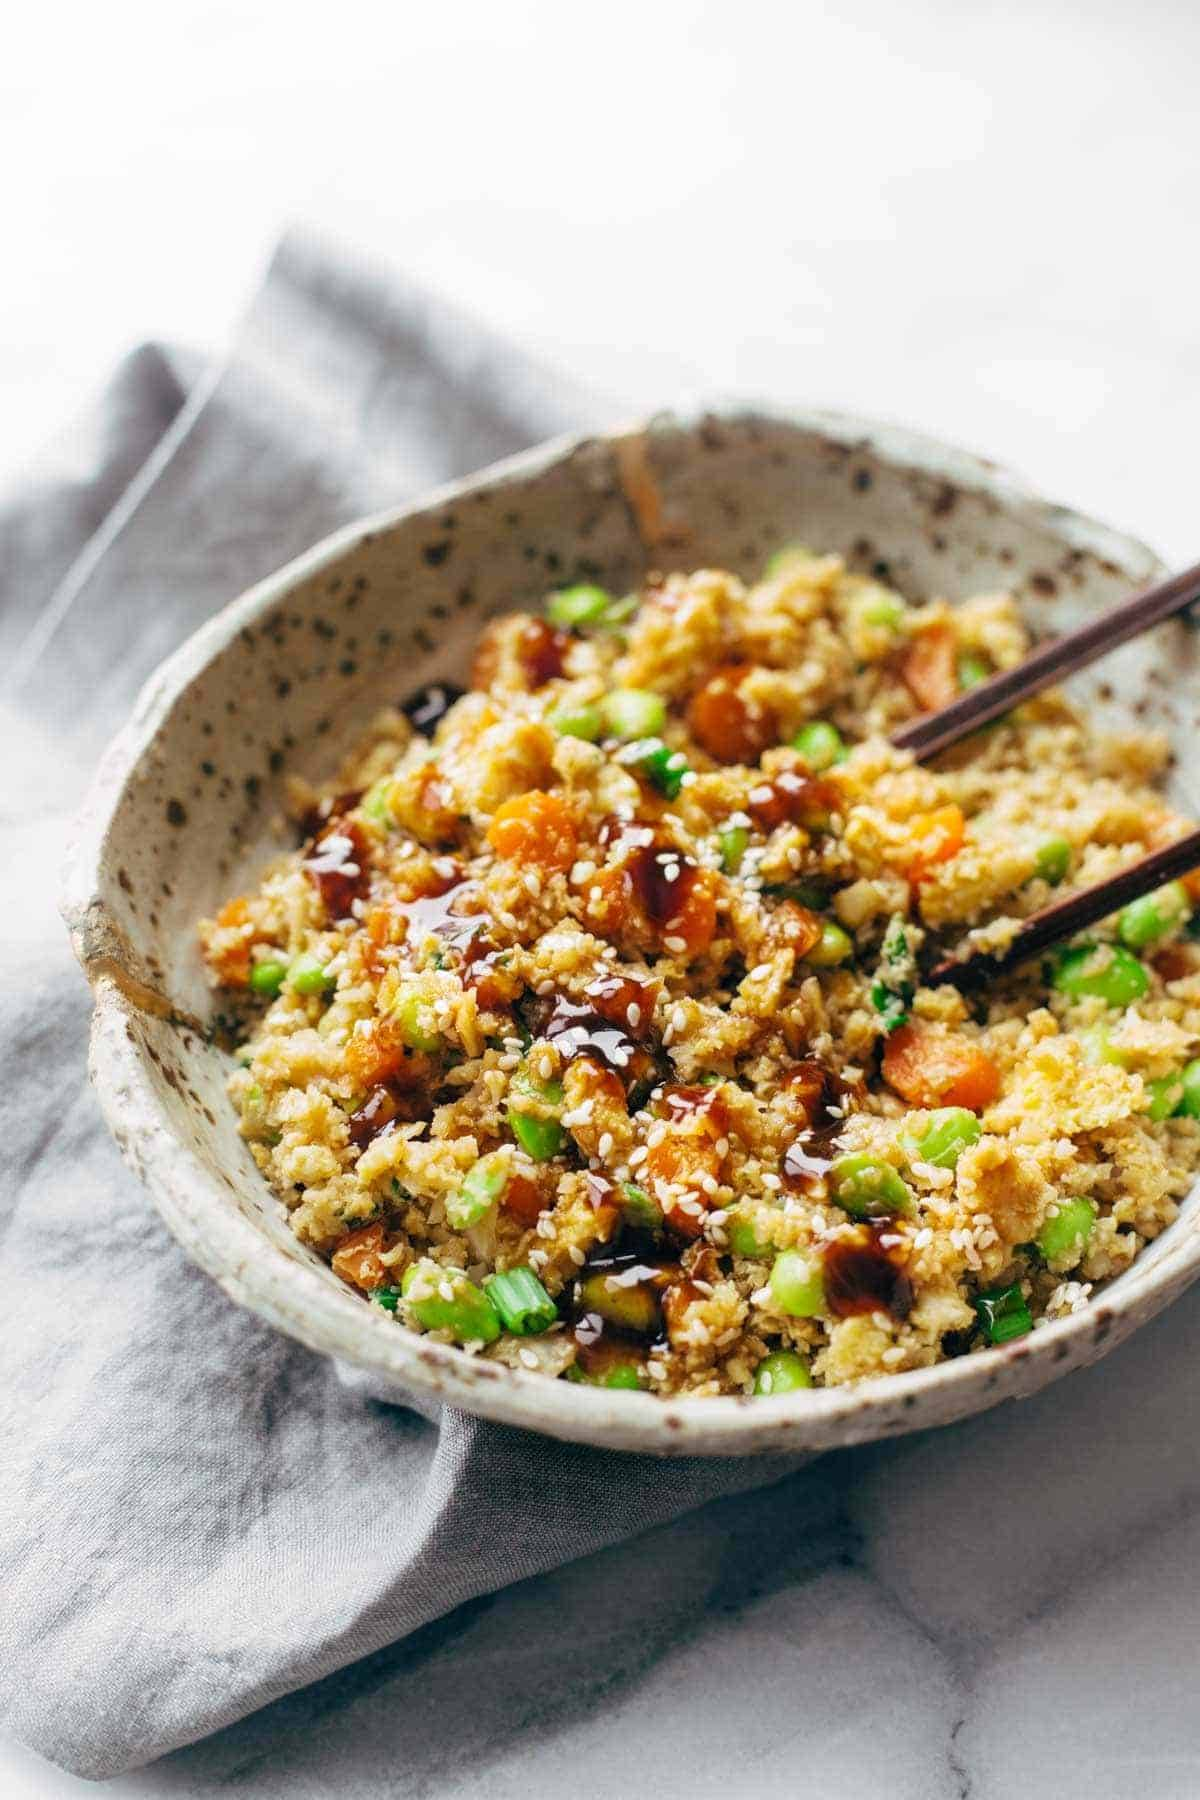 15 Minute Cauliflower Fried Rice - Pinch of Yum